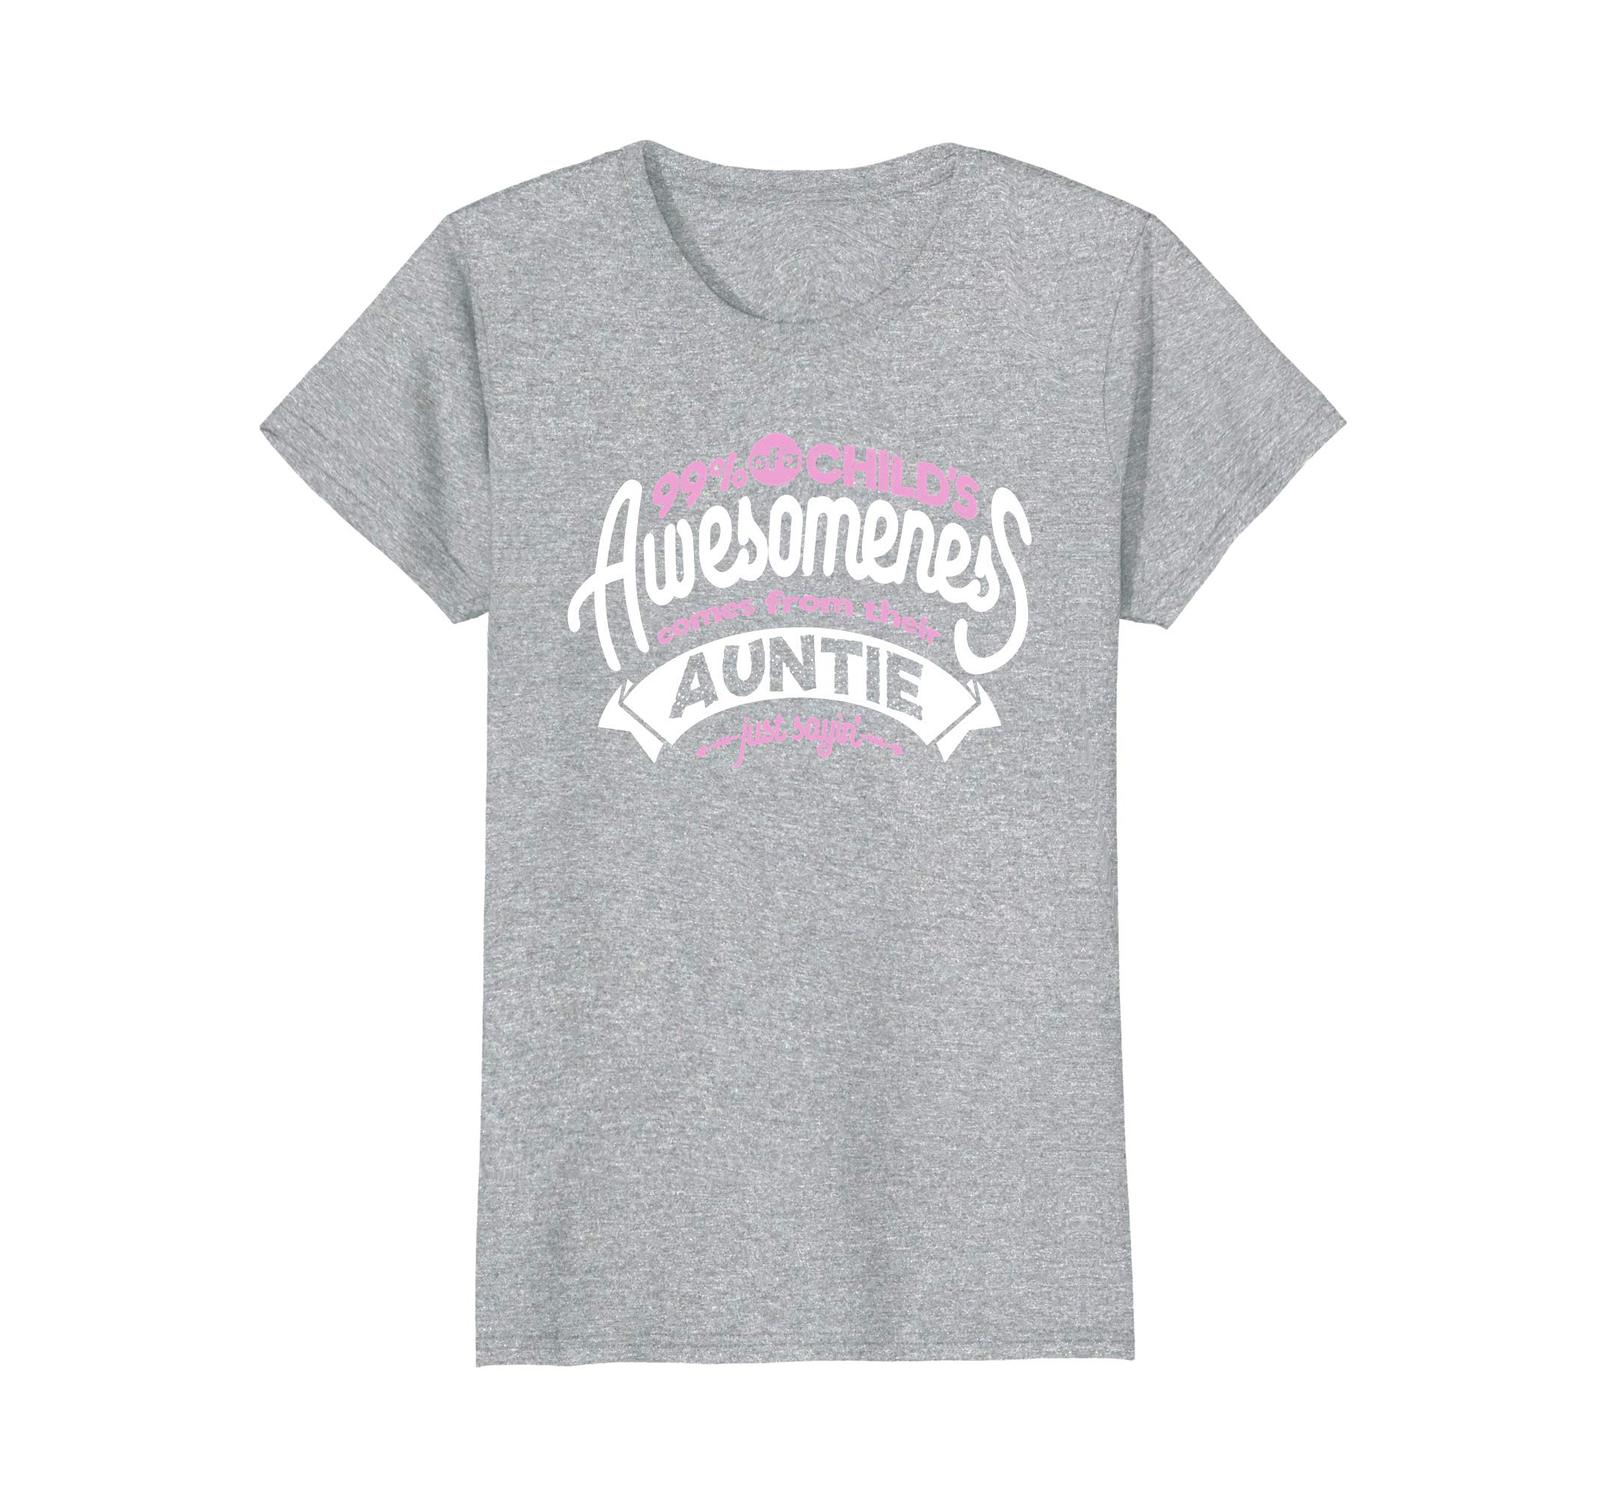 Primary image for Funny Shirts - 99% Of A Child's Awesomeness Comes From Auntie T-shirt Wowen